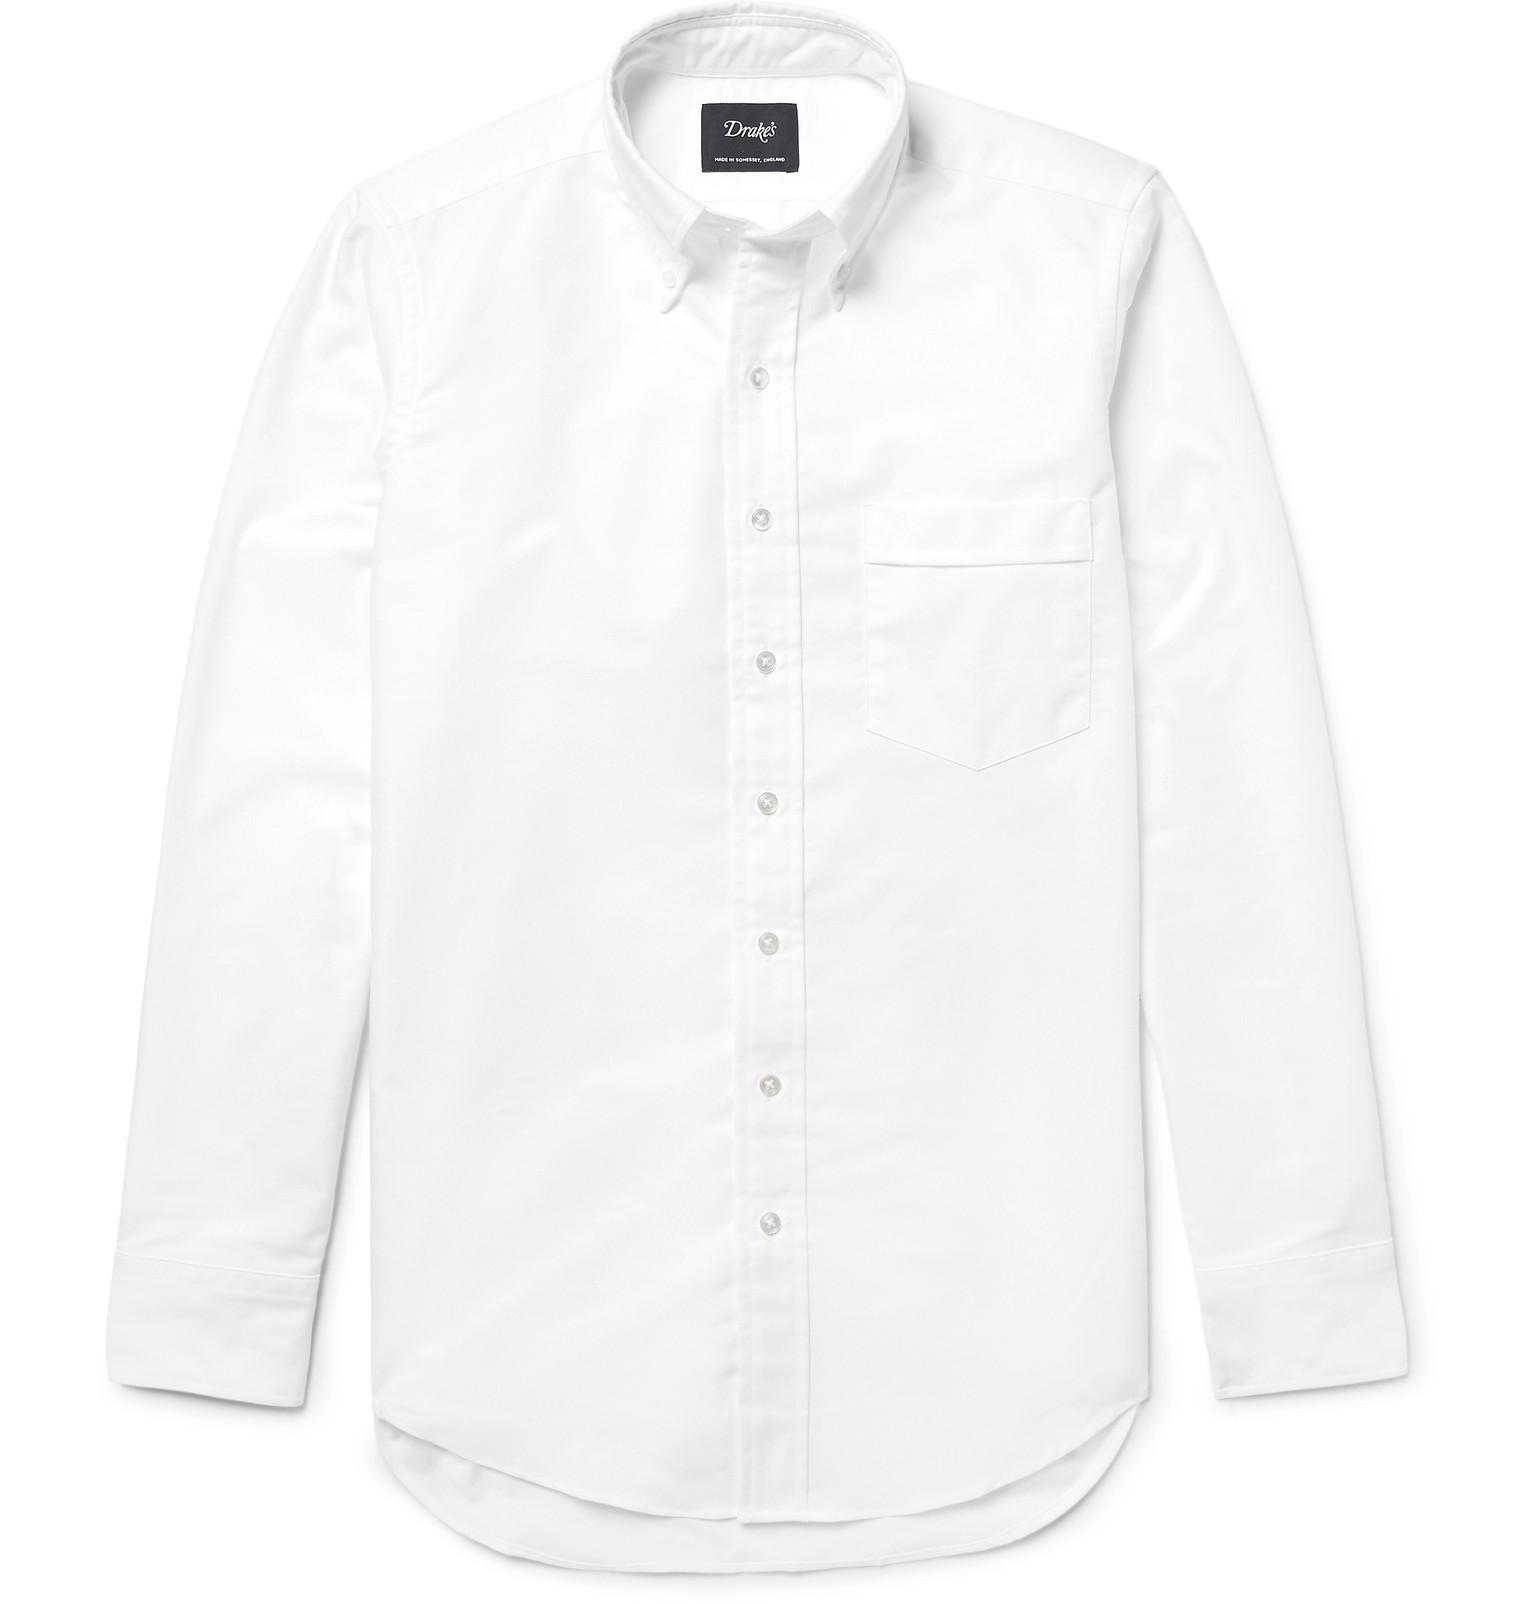 Drake 39 s button down collar cotton oxford shirt in white for White button down collar oxford shirt